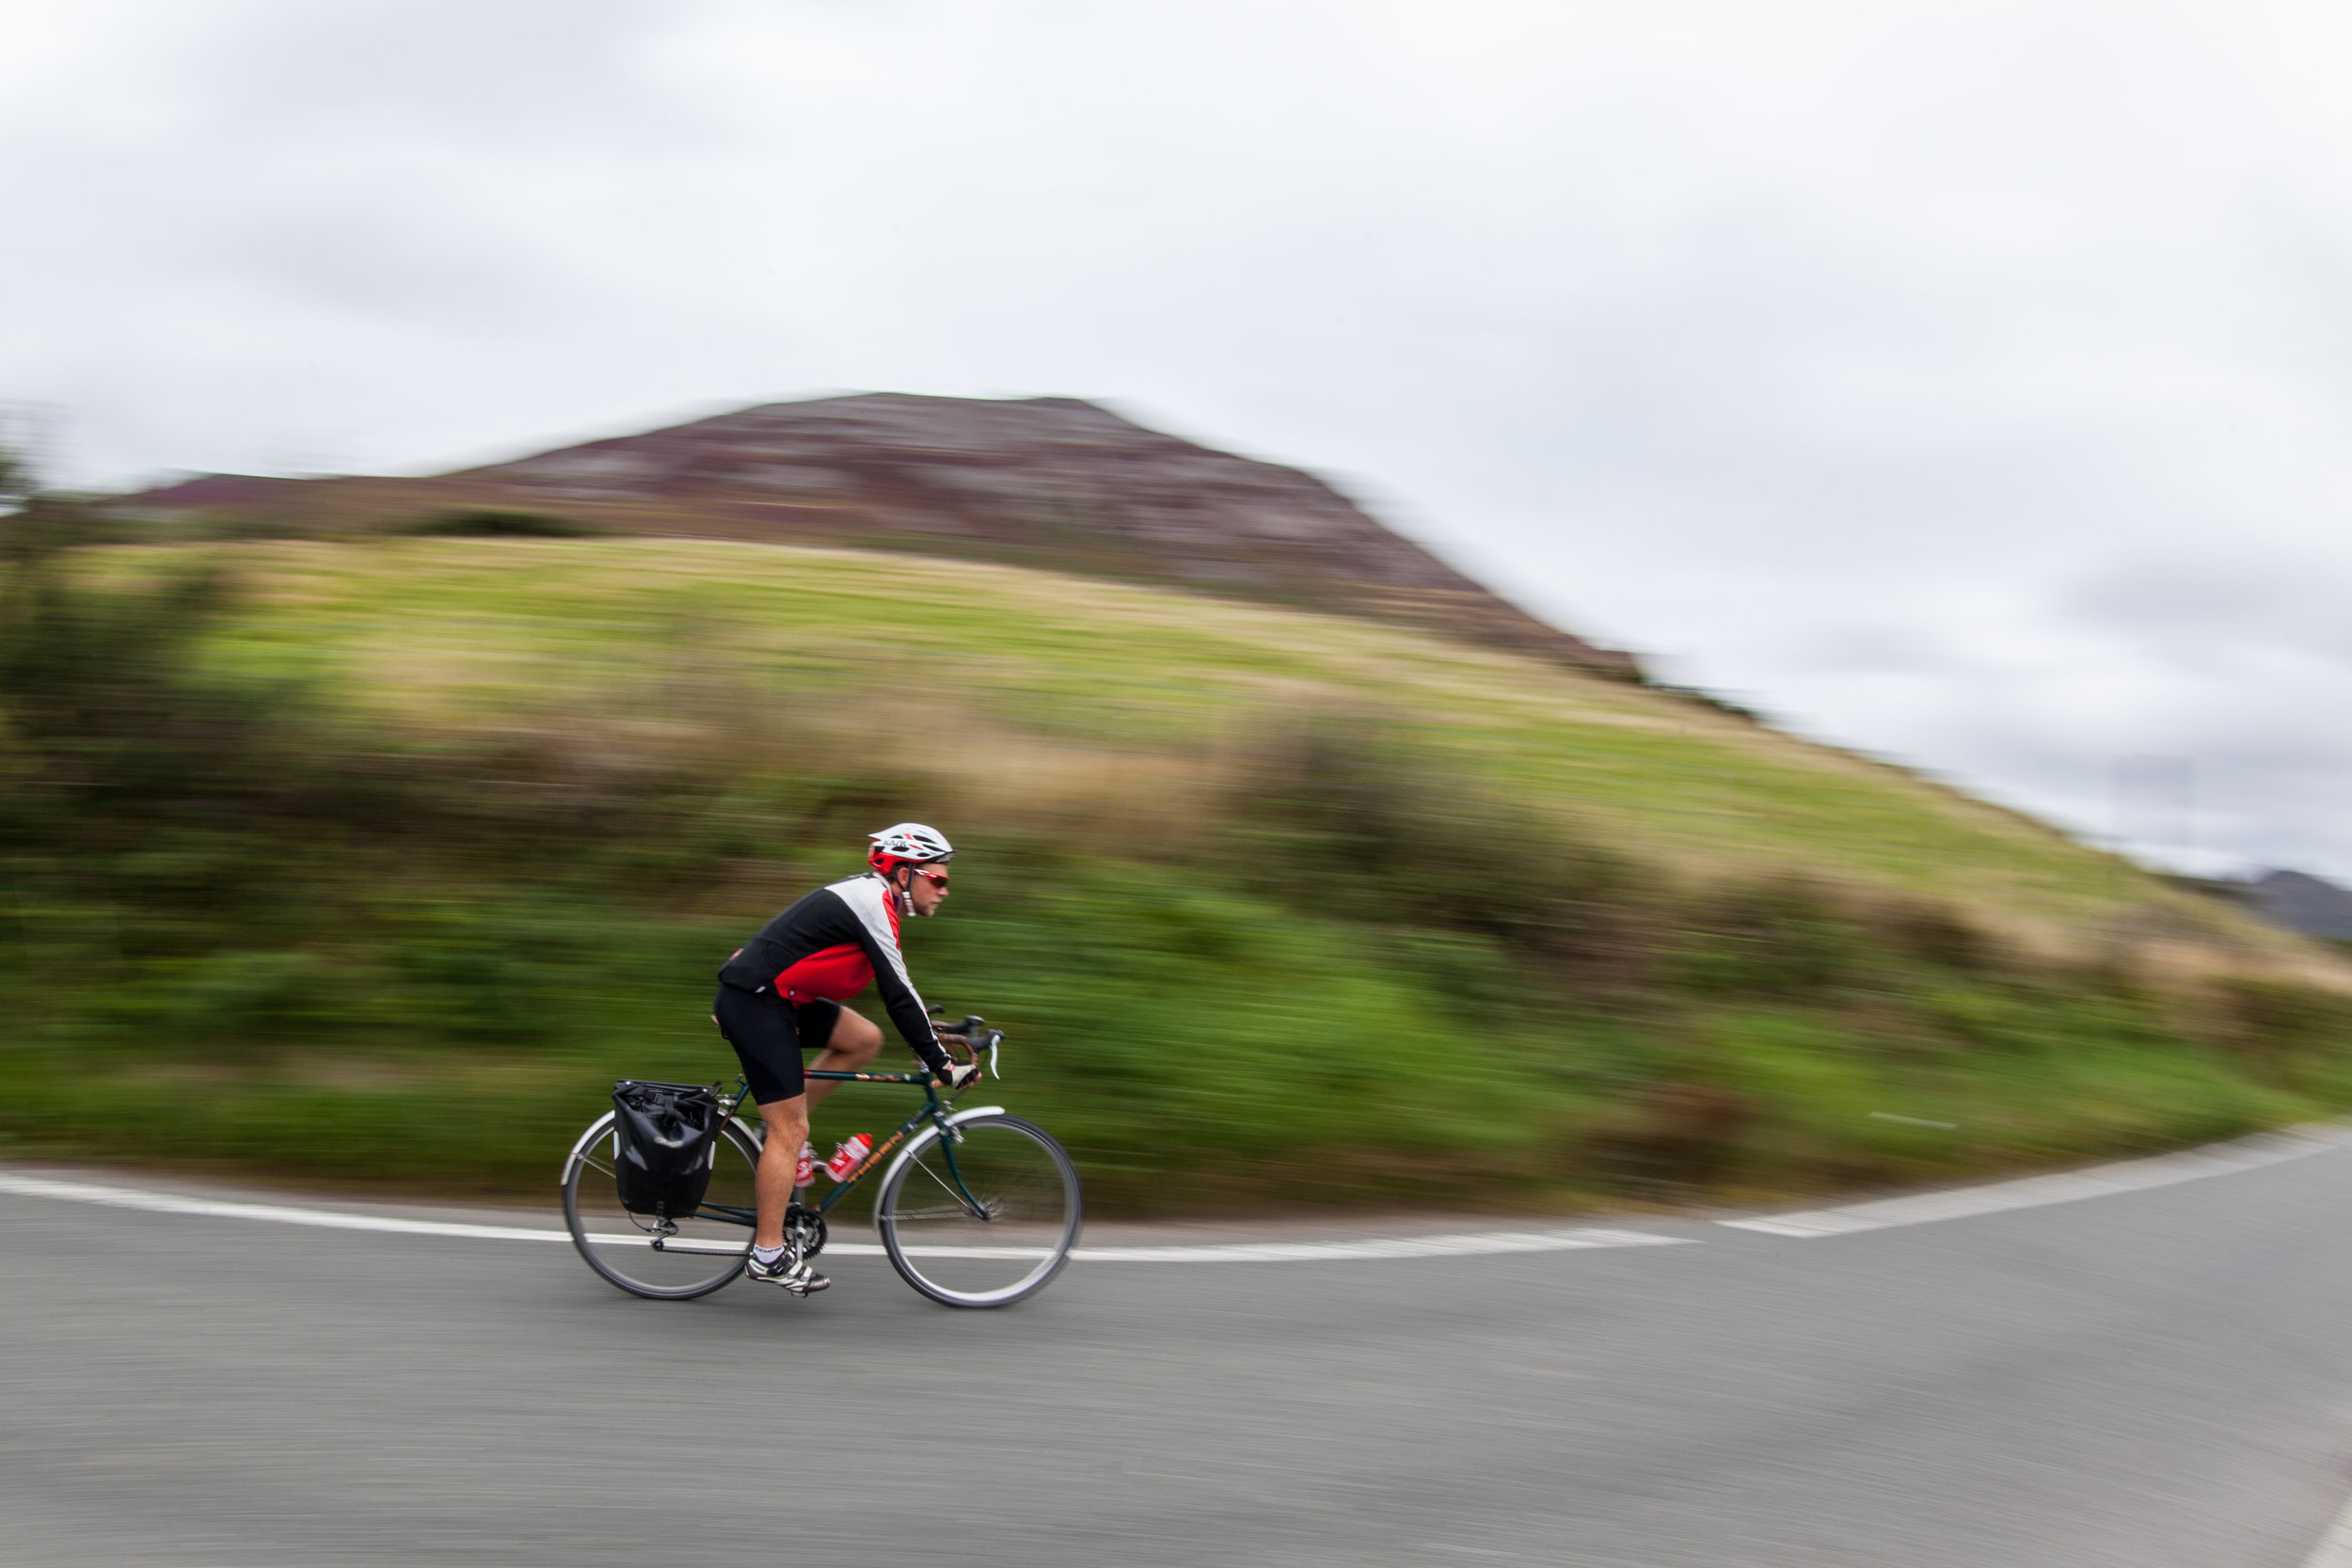 James Cope speeds by on his bicycle in North Wales on the Countrywide Great Tour.